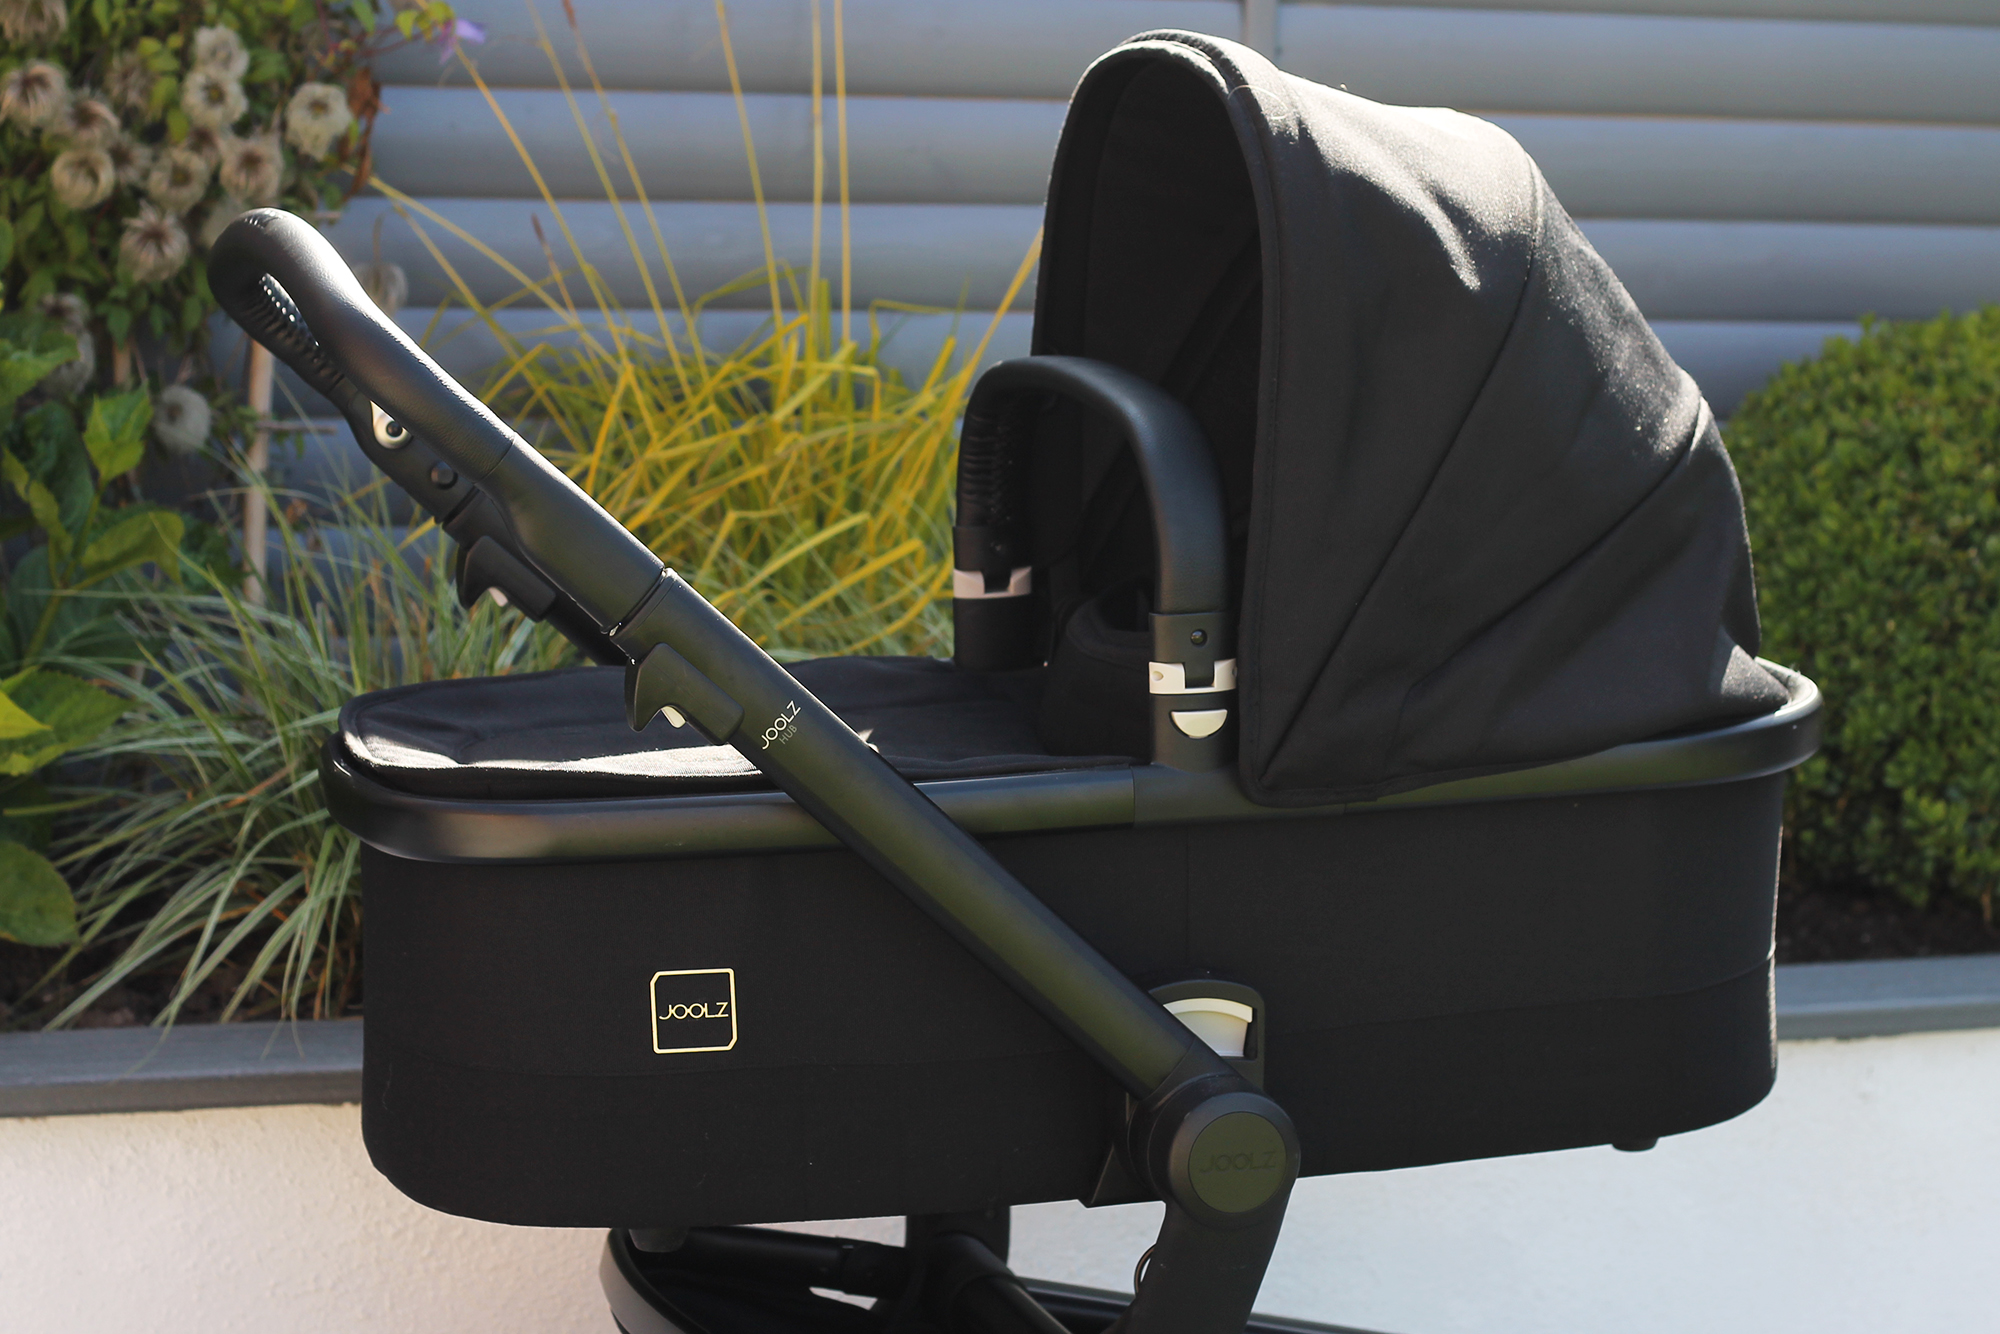 Joolz Pram Frame Why We Are Cruising Around In The New Joolz Hub Lets